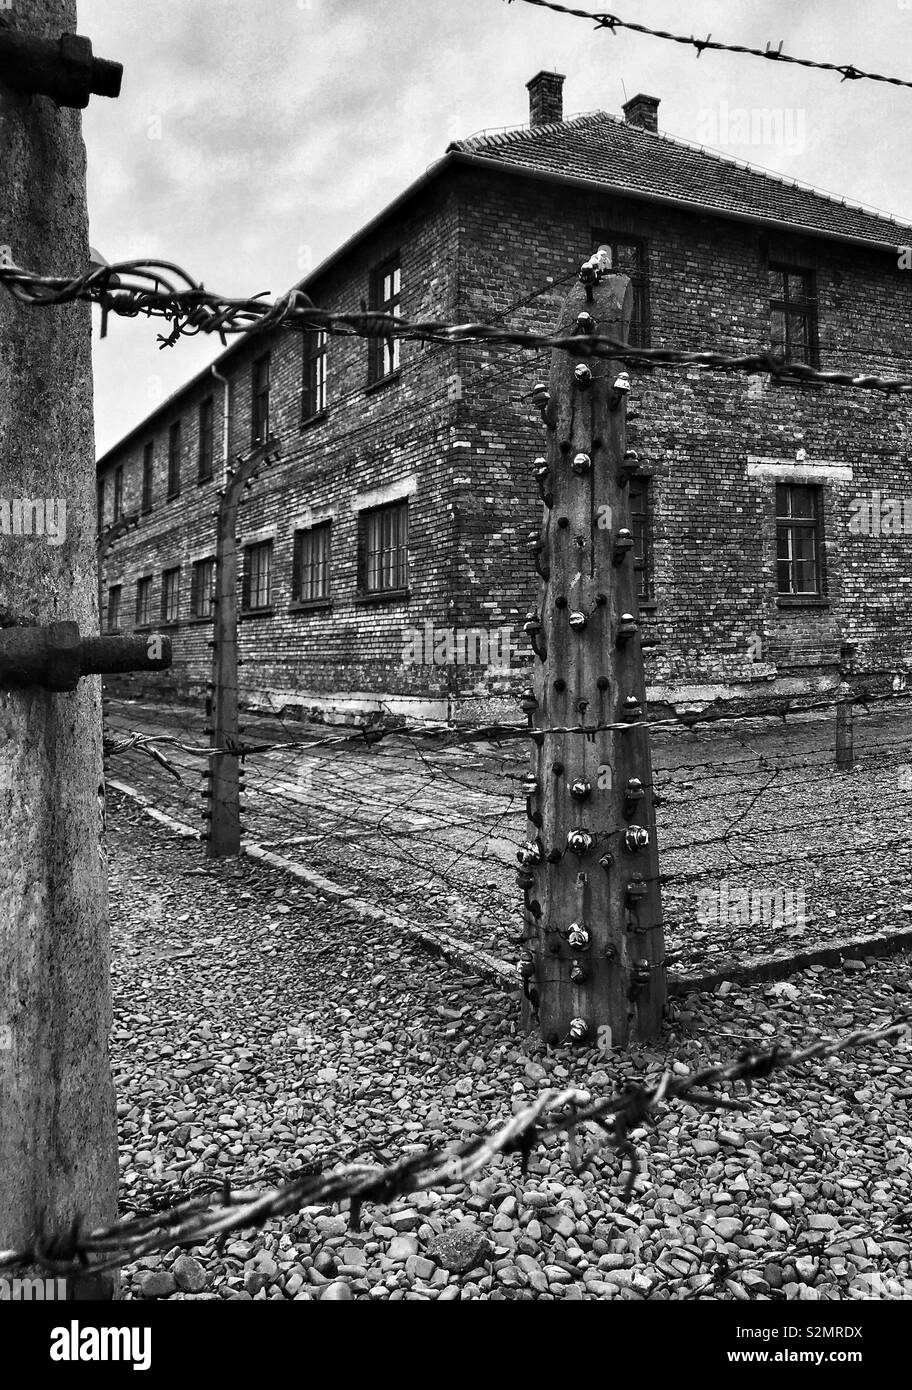 An exterior view of a building surrounded by electric fencing at the WW2 Nazi Auschwitz Concentration Camp in Oswiecim, Poland. Now a Memorial Museum & UNESCO World Heritage Site. © COLIN HOSKINS. - Stock Image